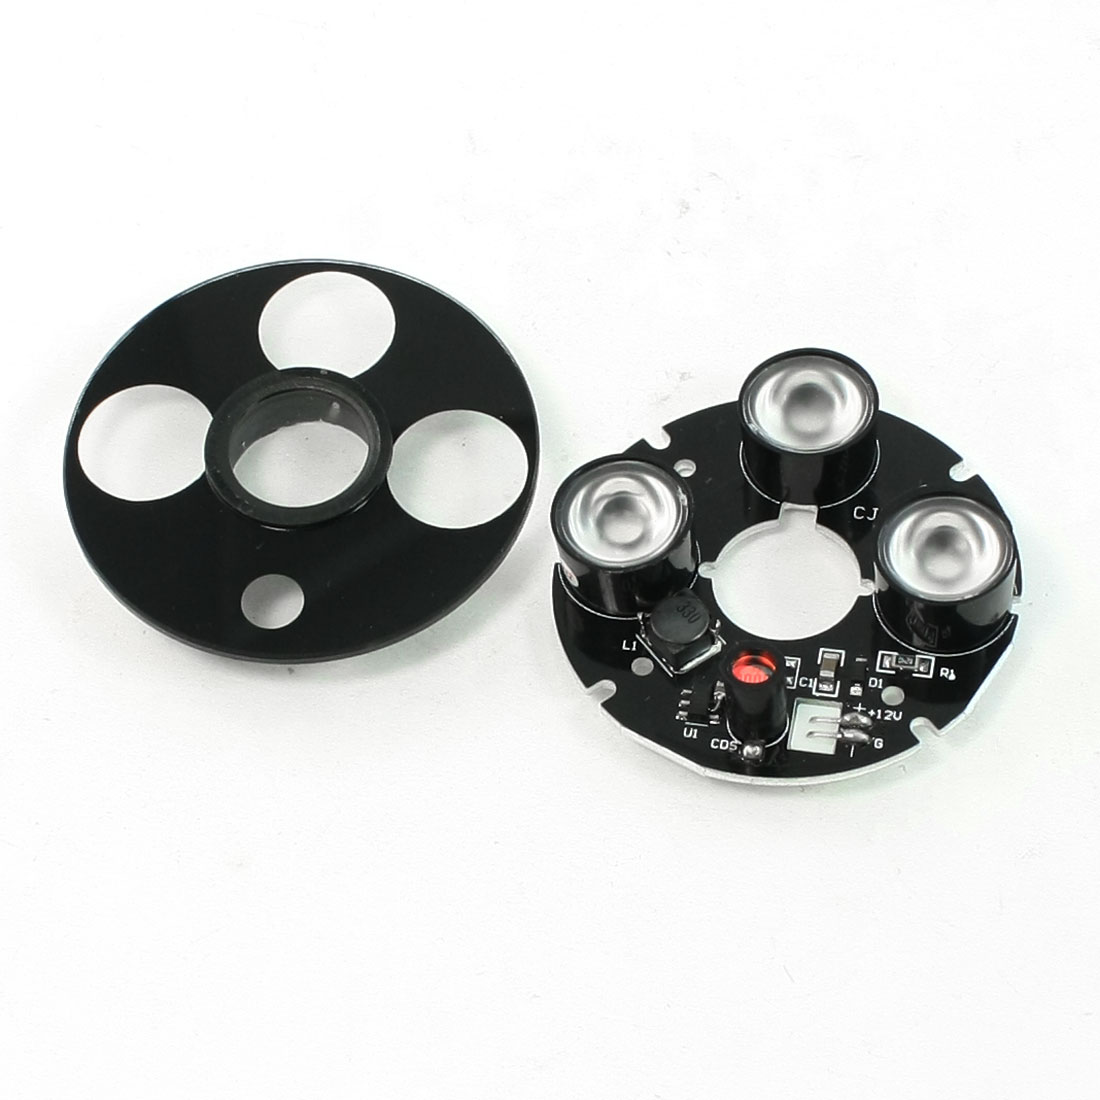 CCTV CCD Camera 80 Degree Red 14mm 3-LED Infrared Bulb IR Board Plate